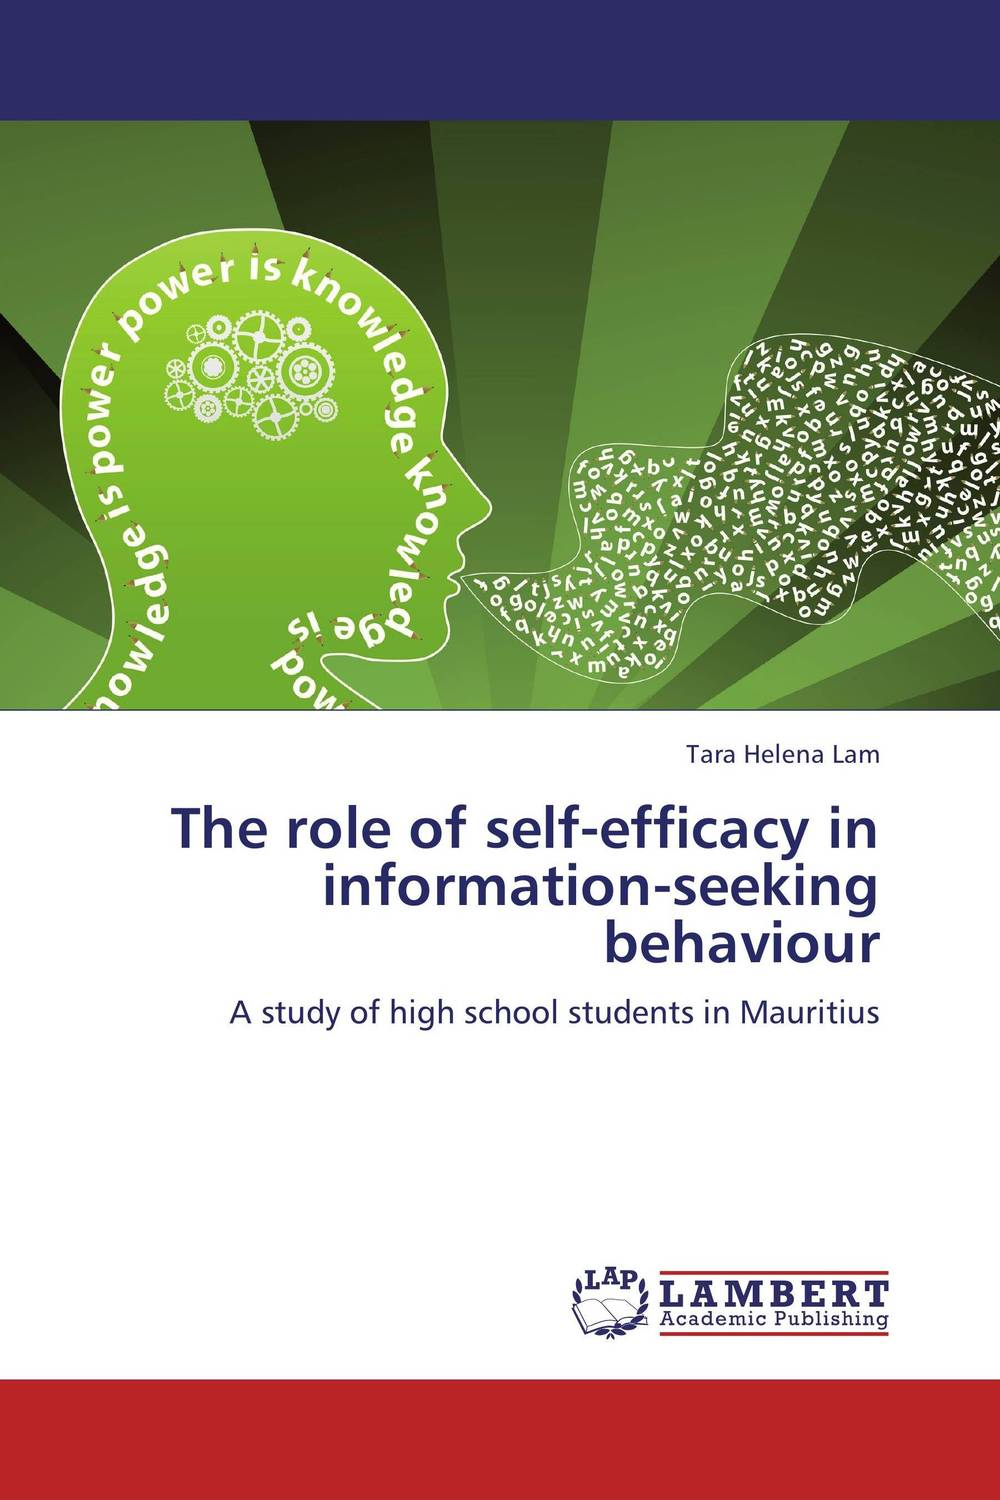 The role of self-efficacy in information-seeking behaviour information seeking behaviour development in an academic institution